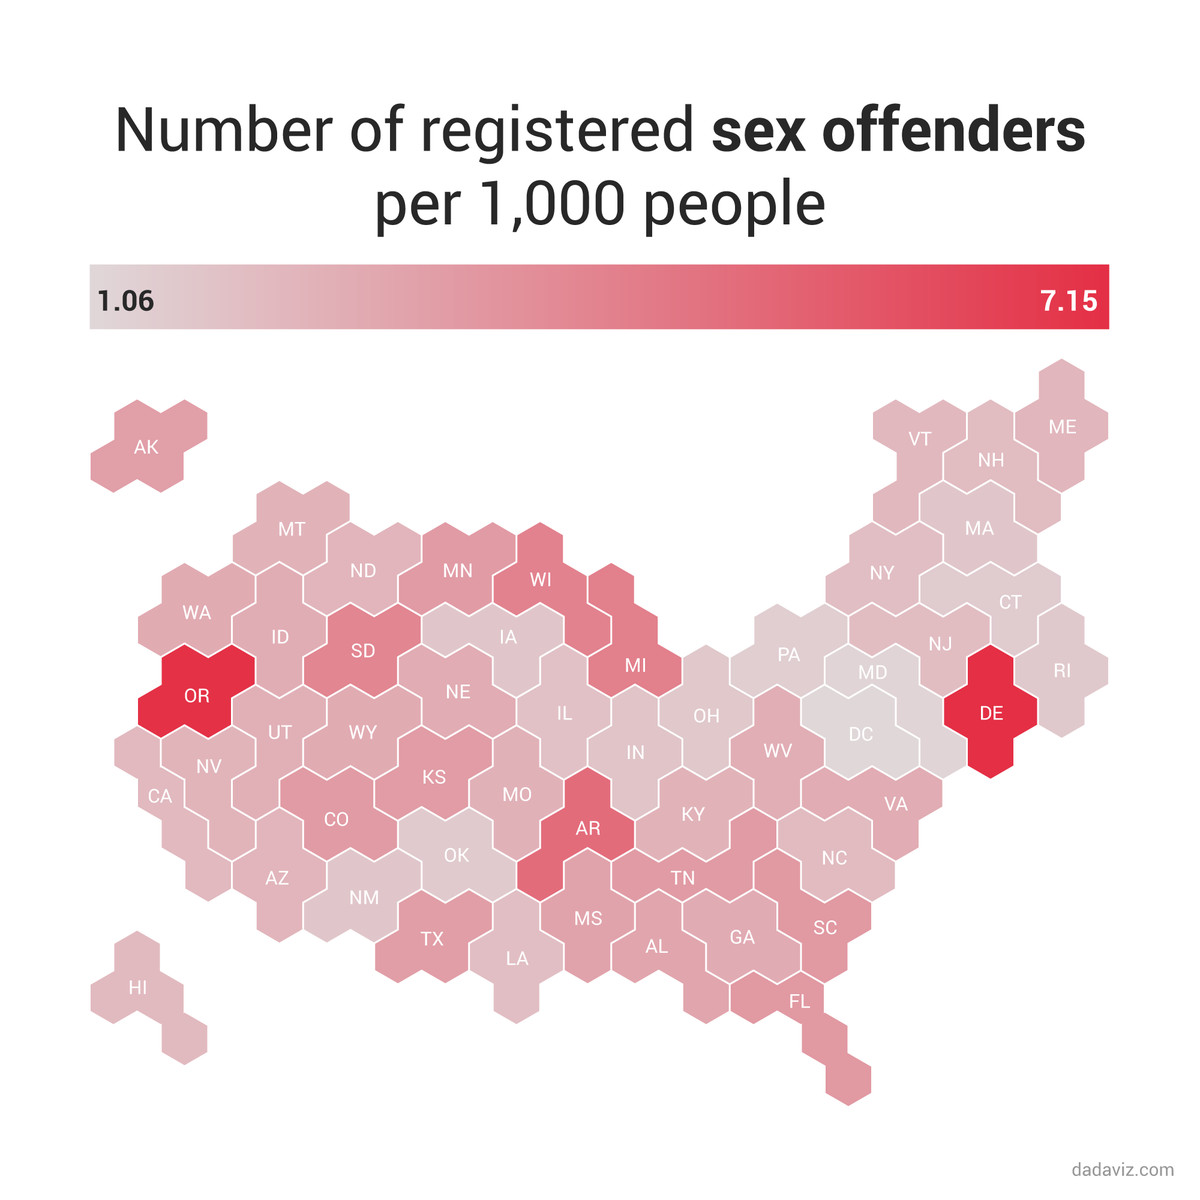 A map of the rate of registered sex offenders per 1,000 people in each state.